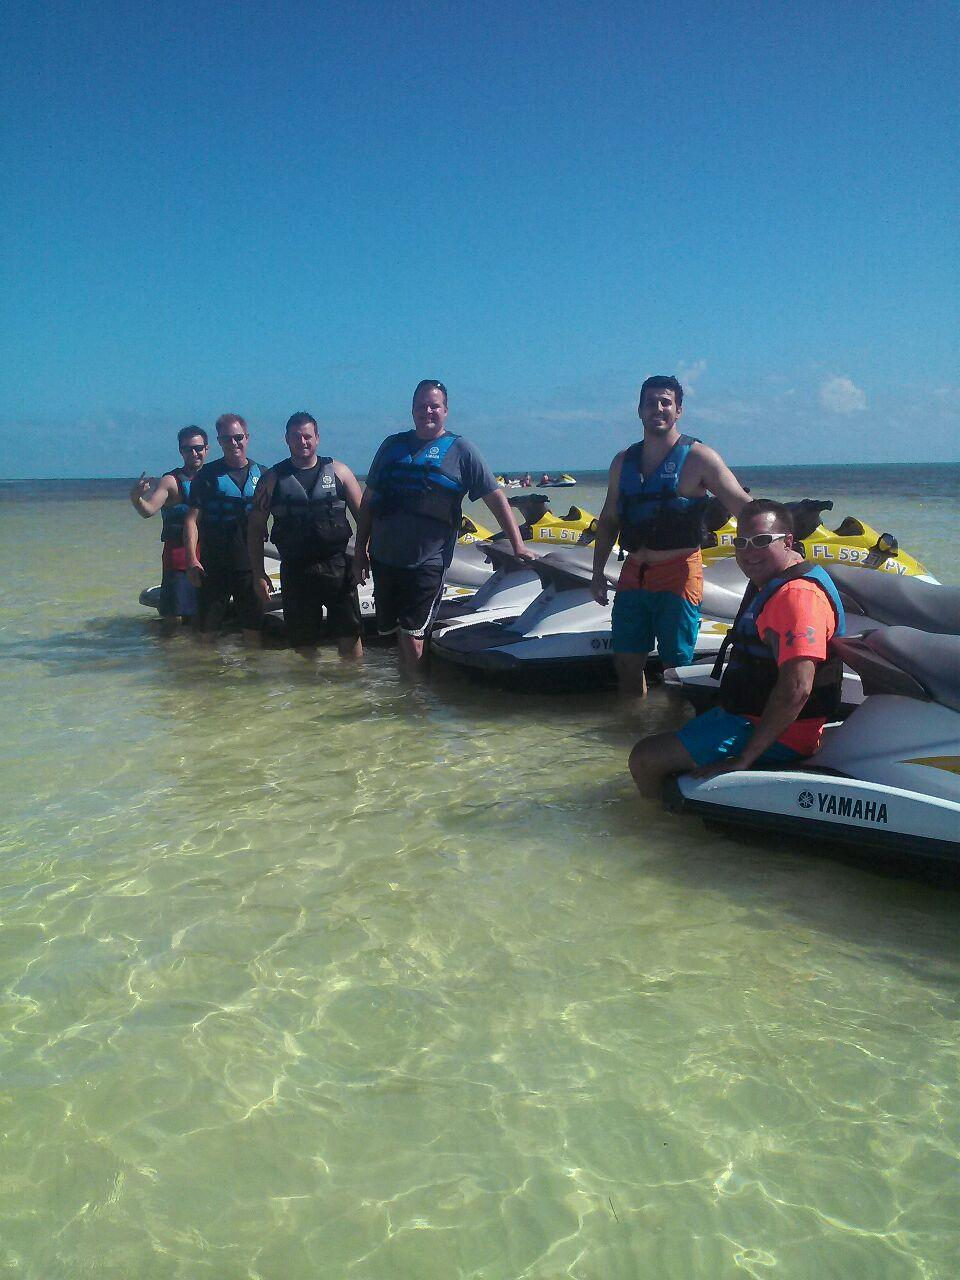 Sales team jet skiing in Florida Keys